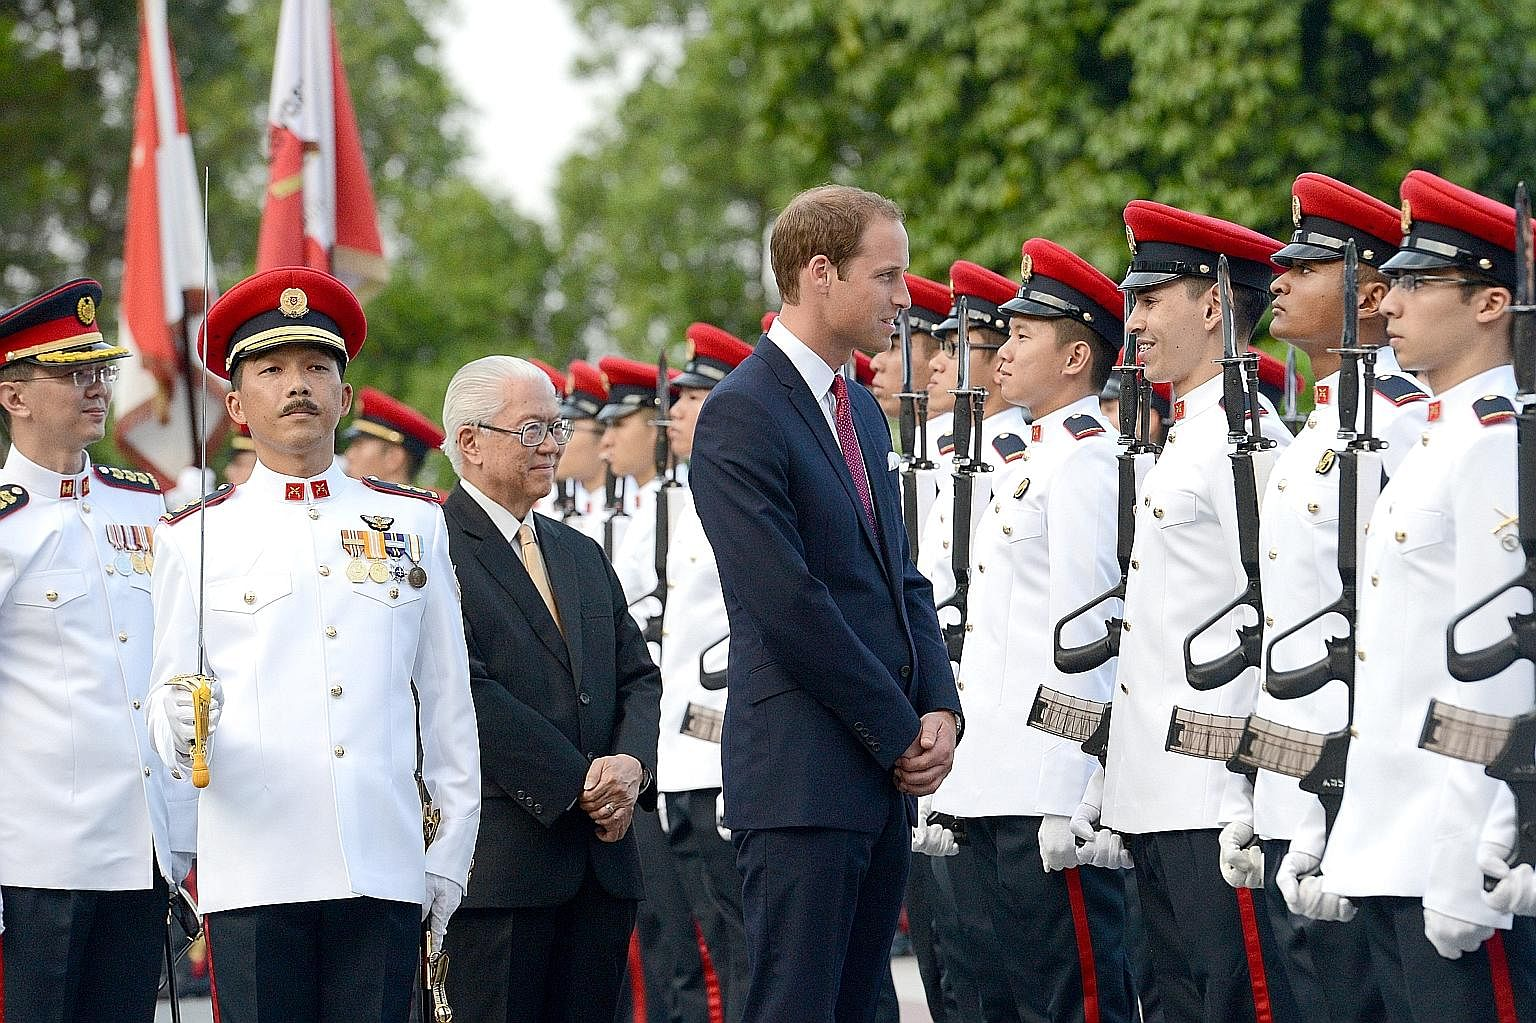 President Tan with (first row, from left) Chinese President Xi Jinping in 2015; Prince William, the Duke of Cambridge, during a welcome ceremony at the Istana in 2012; Brunei's Crown Prince Haji Al-Muhtadee Billah and his wife, Princess Sarahin, in 2